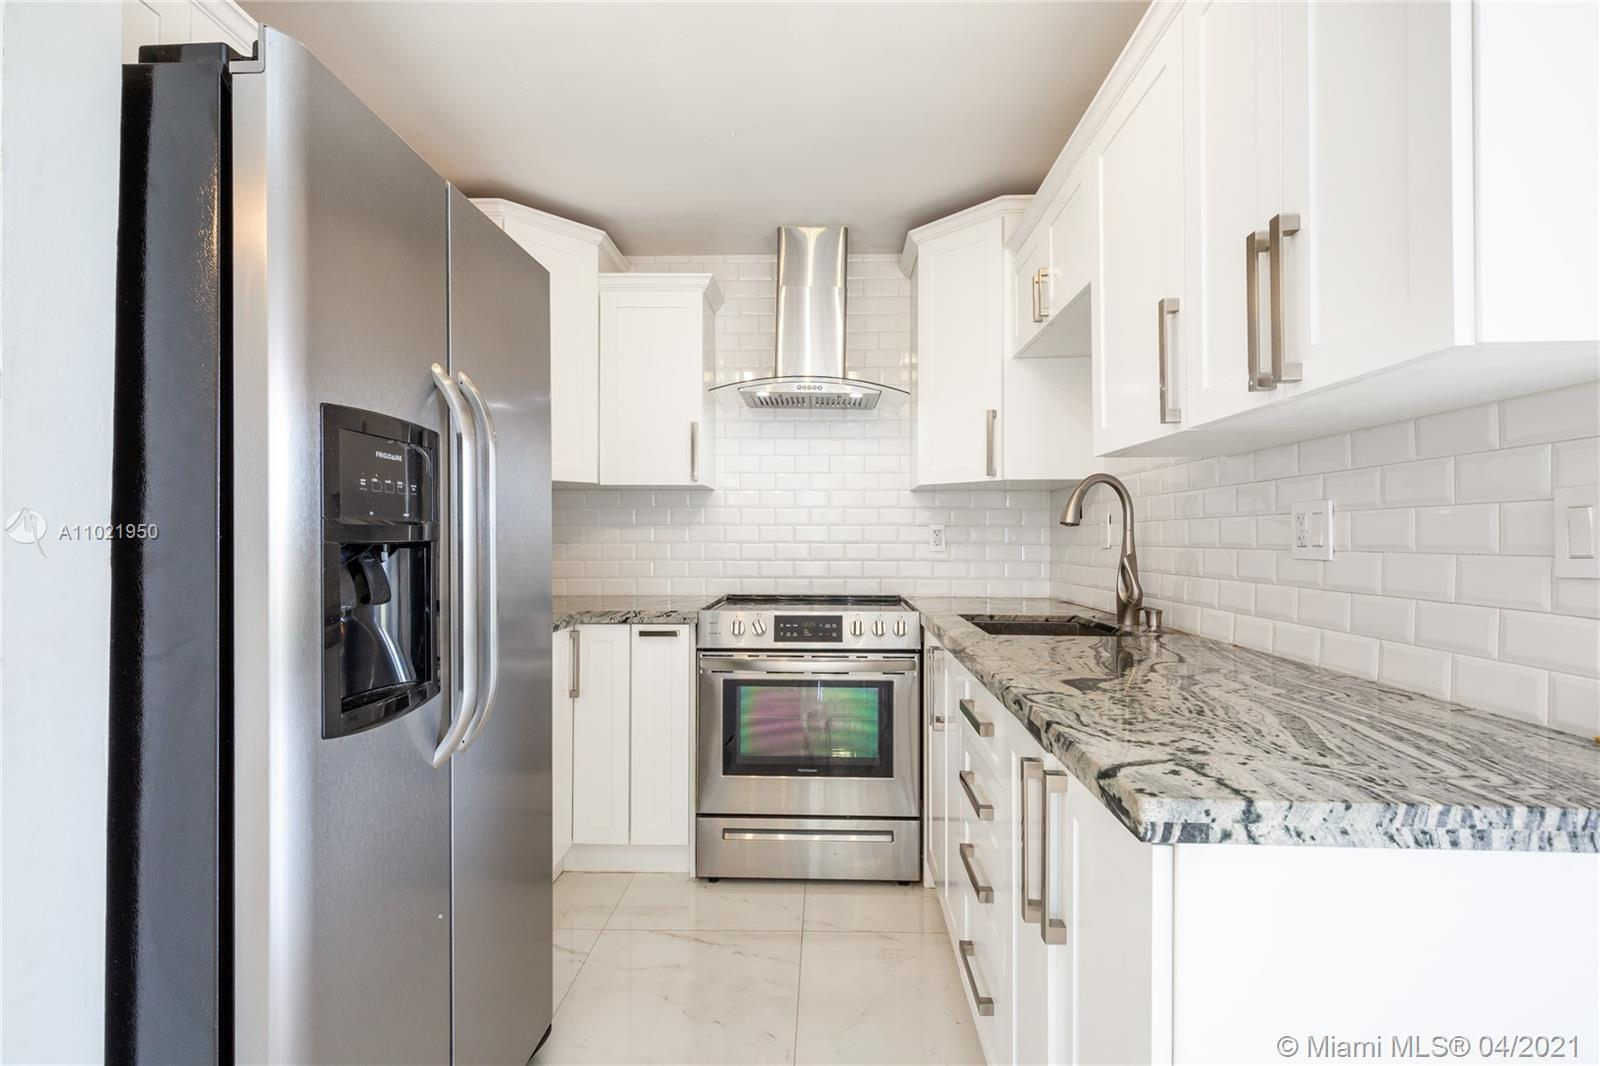 2 bedroom + 2 bathroom apartment located at Fontainebleau. Great unit in the heart of Miami, minutes from Dolphin mall, shops, and restaurants. unit with balcony with garden view. Newly remodeled kitchen, microwave, refrigerator, electric range, and dishwasher. next to schools and shopping within walking distance. New appliances, a/c and water heater. come and see this gem before it's gone! easy to show!!!